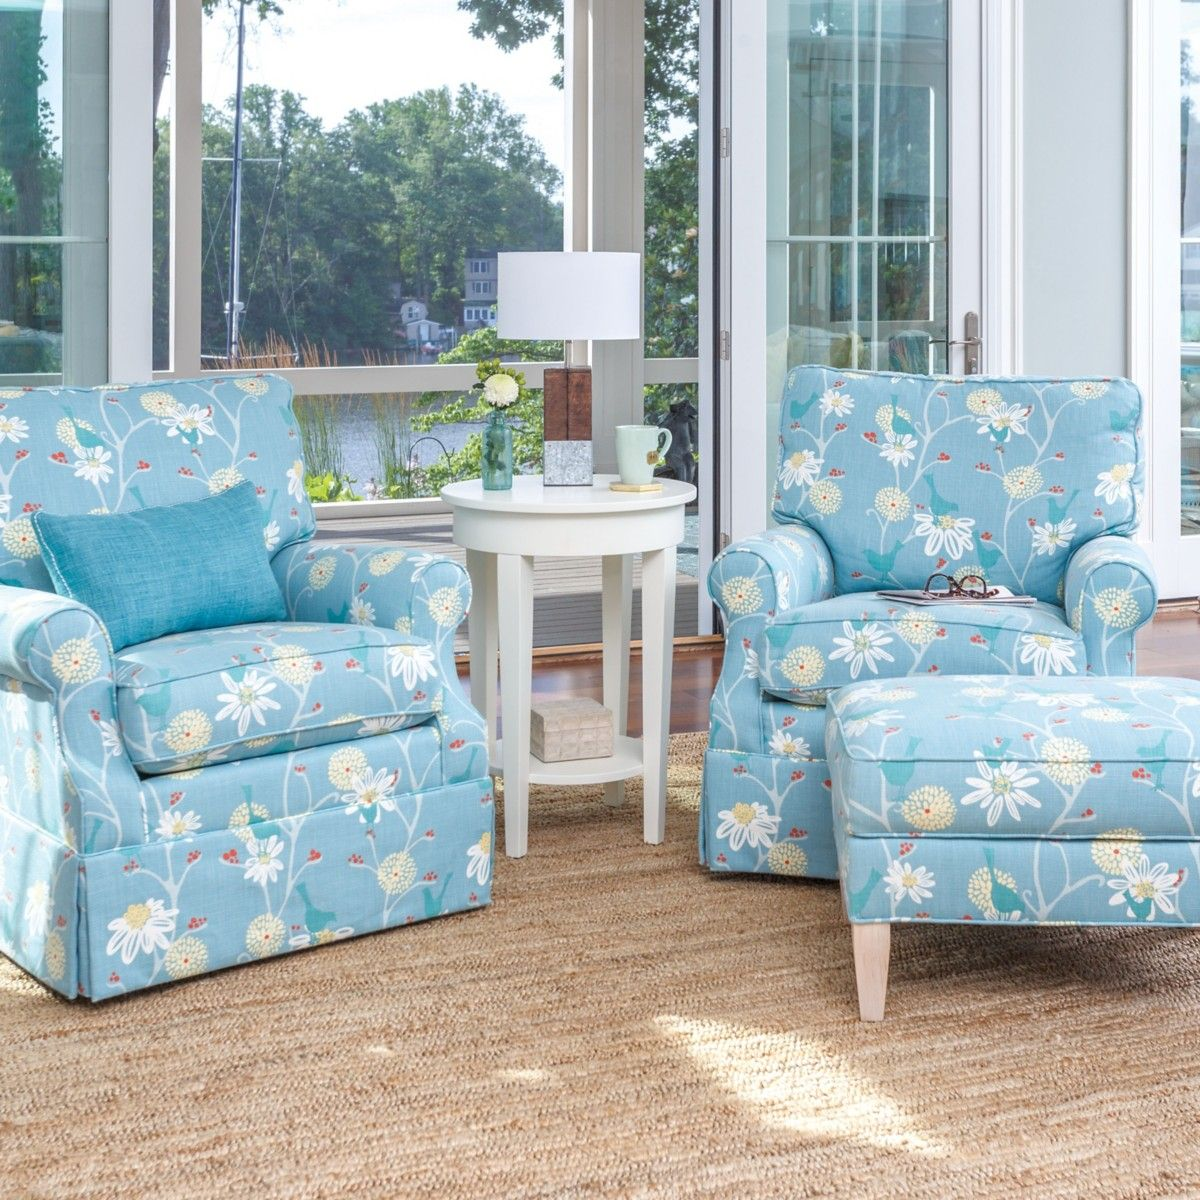 Lucy Swivel Glider Chair | Glider chair, Maine cottage and Gliders